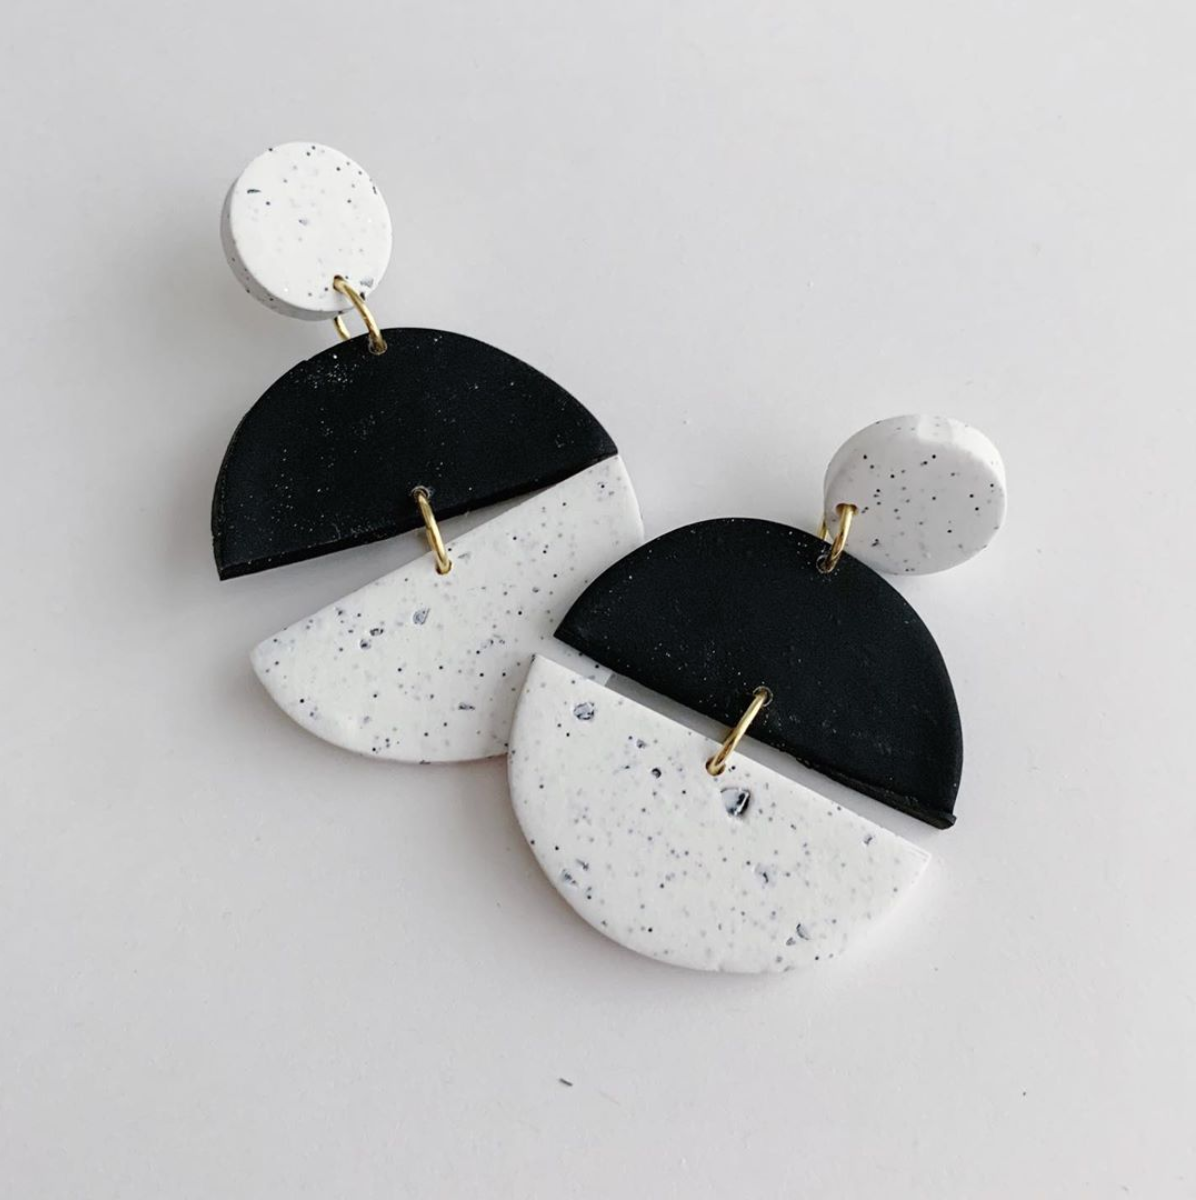 Handmade Polymer Clay Earrings Black And White Speckle Granite Circle Diy Polymer Clay Jewelry Diy Diy Clay Earrings Polymer Clay Jewelry